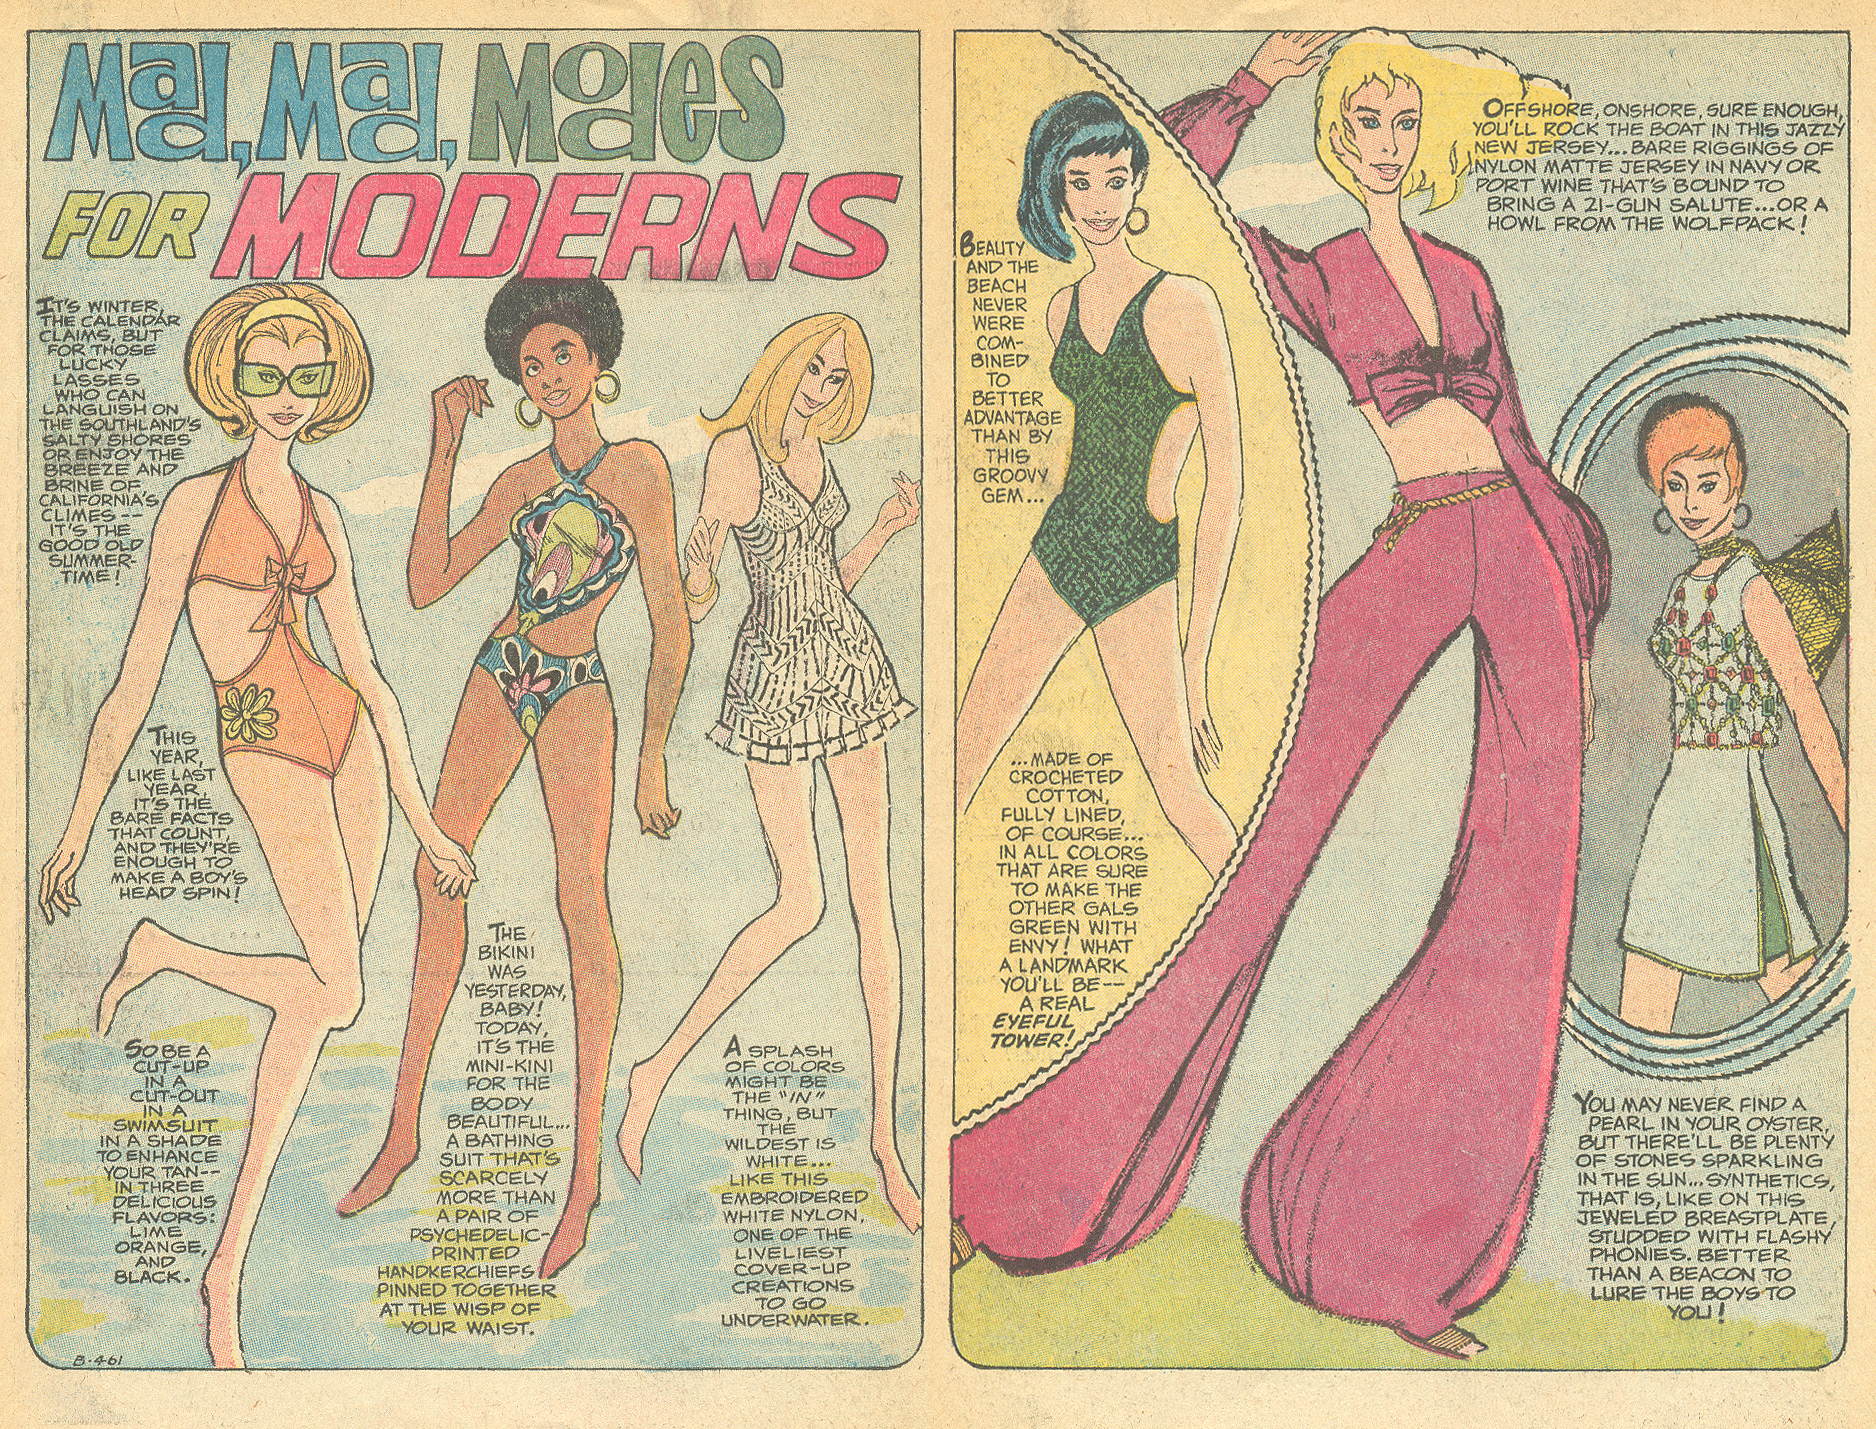 """Mad Mad Modes for Moderns""  Girls' Romances  #147 (March 1970)"